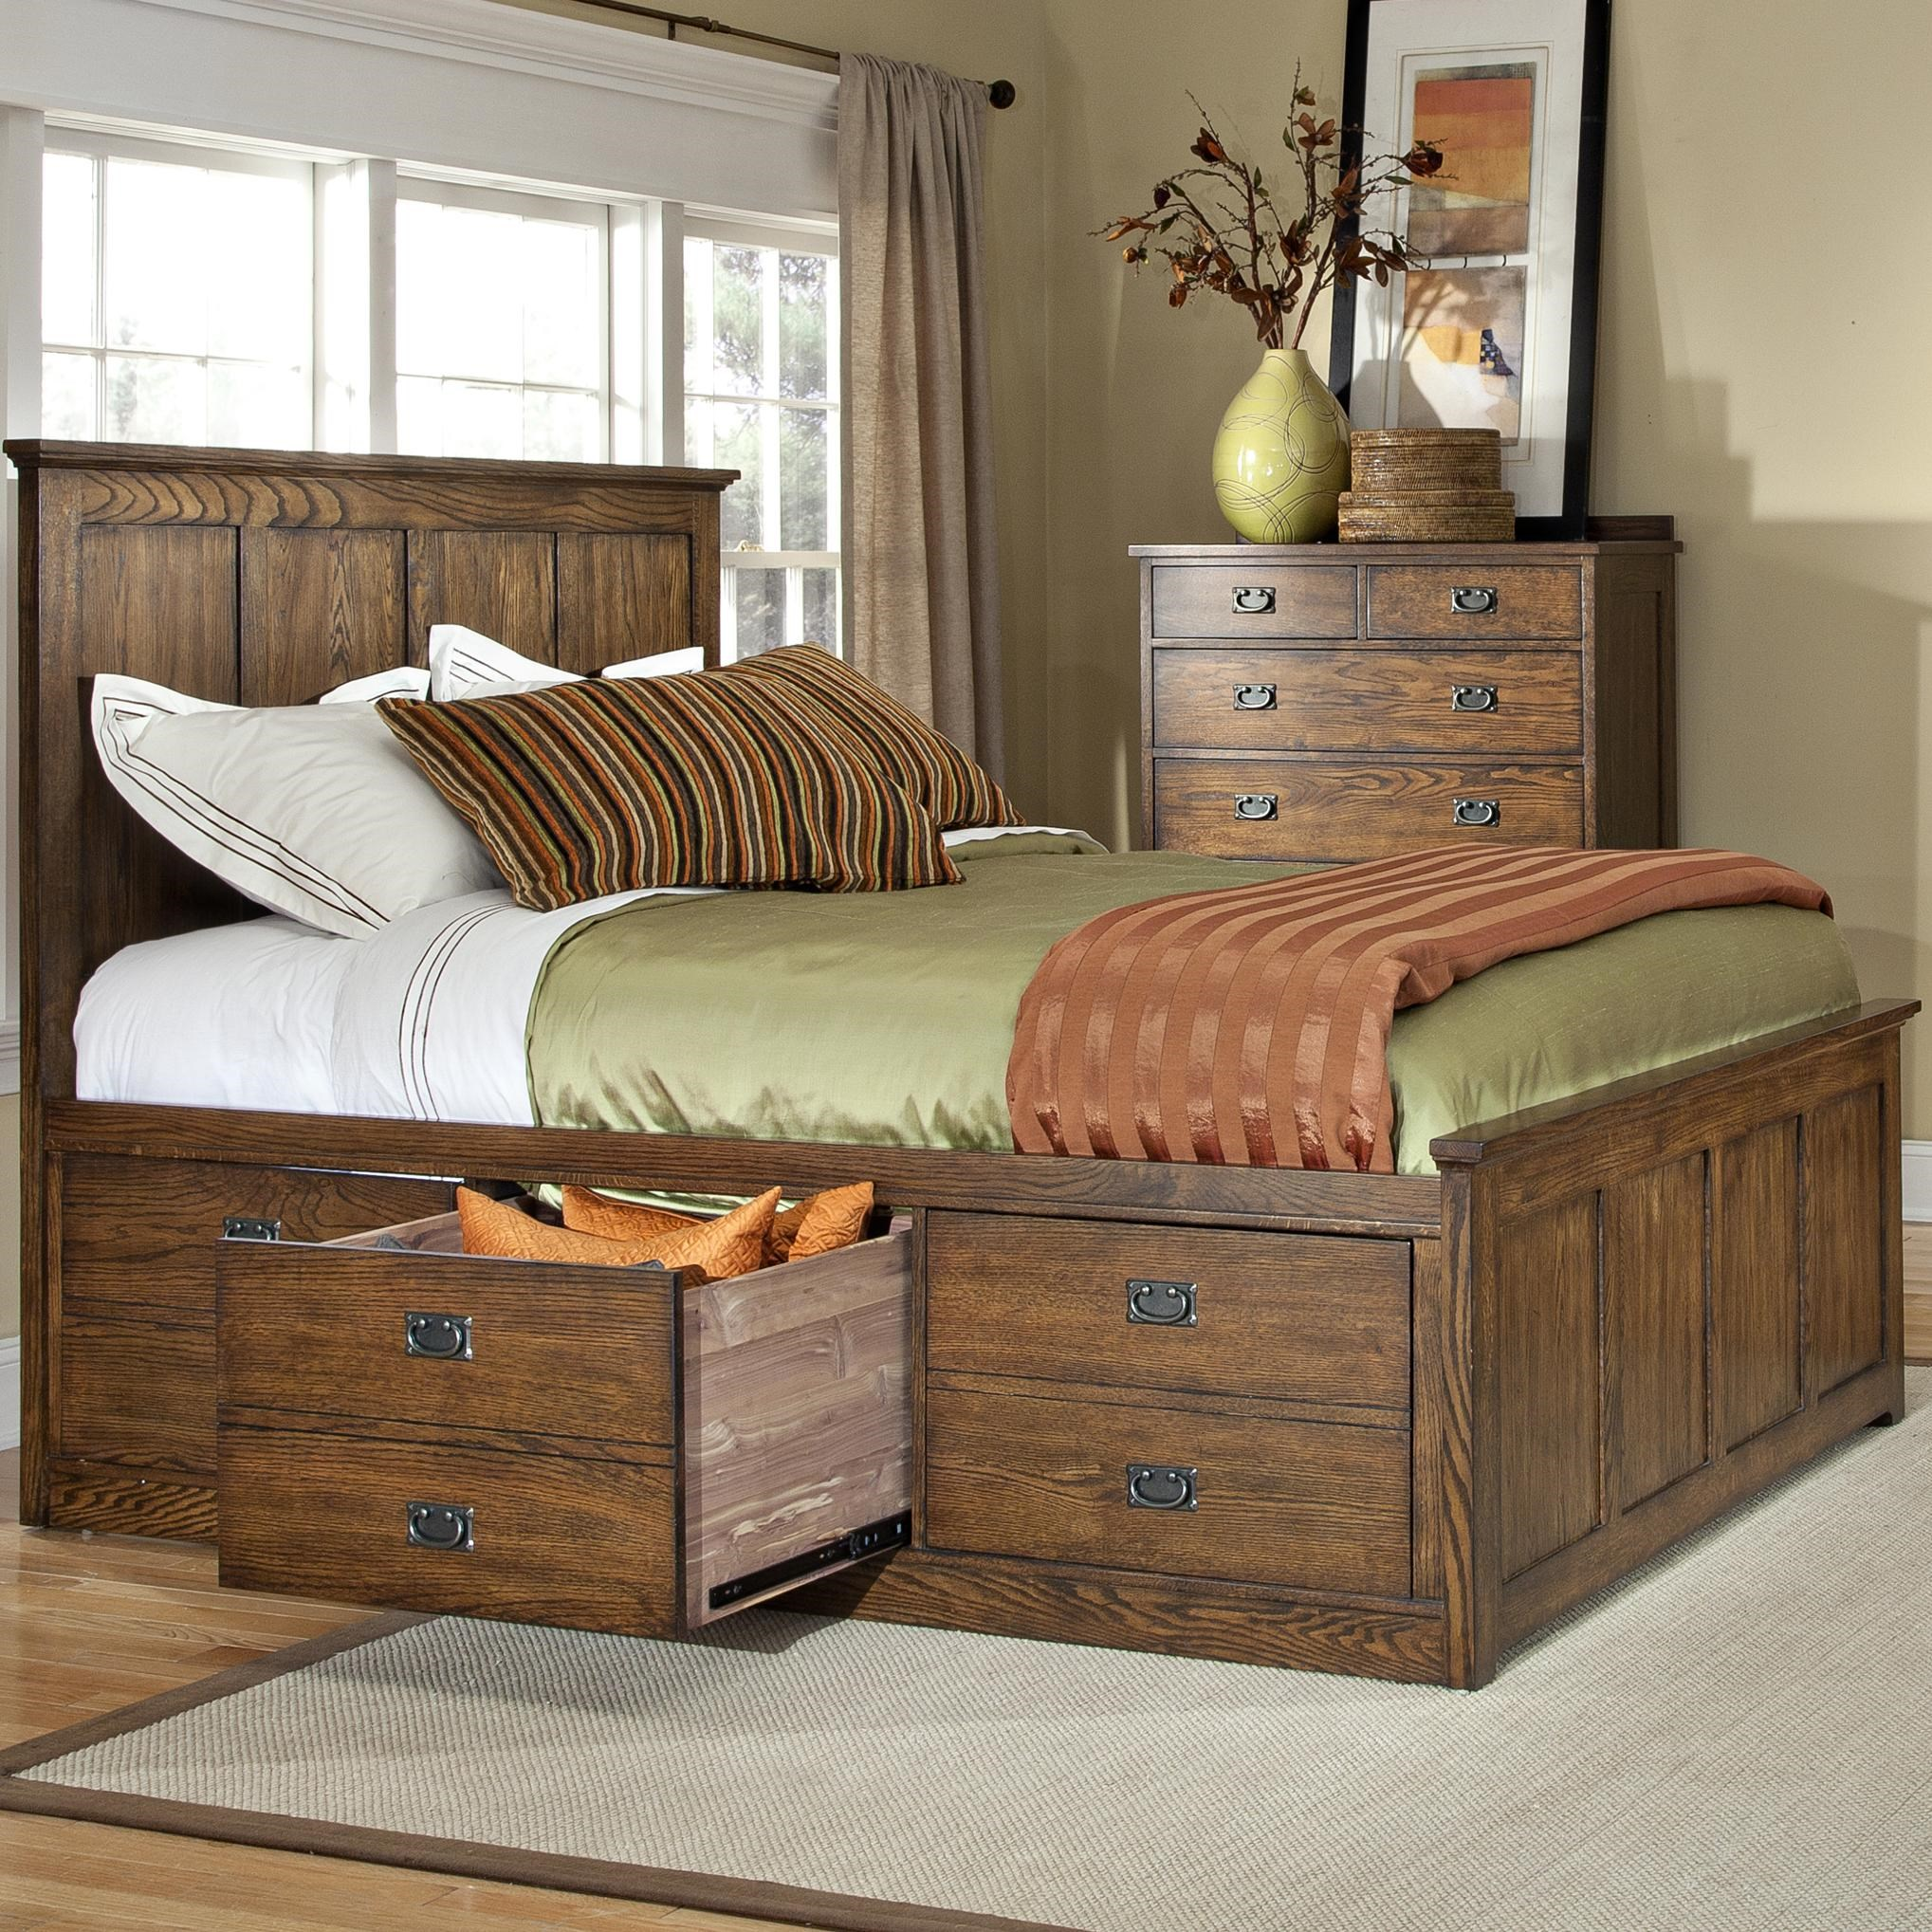 Queen Bed With Drawers Part - 44: Bed Shown May Not Represent Size Indicated